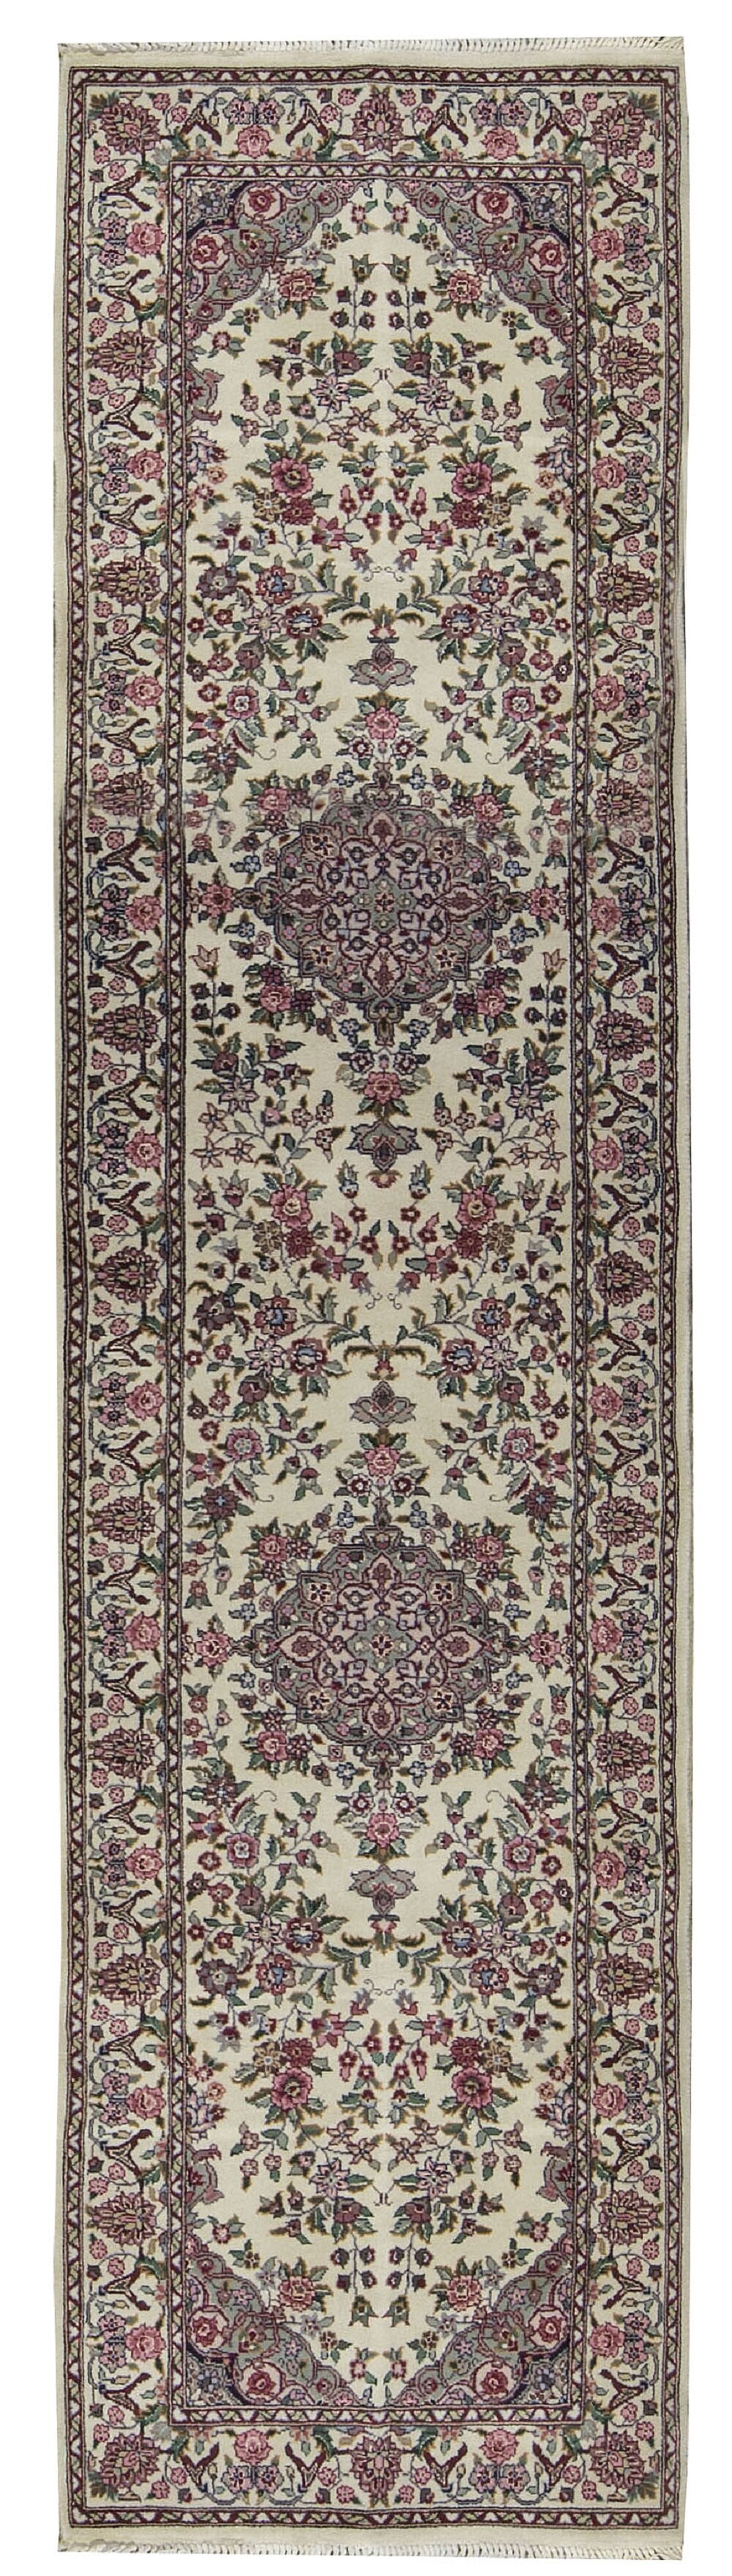 Bokara Rug Co Inc One Of A Kind Jahan Hand Knotted Ivory Green Pink 2 6 X 10 Runner Wool Area Rug Wayfair